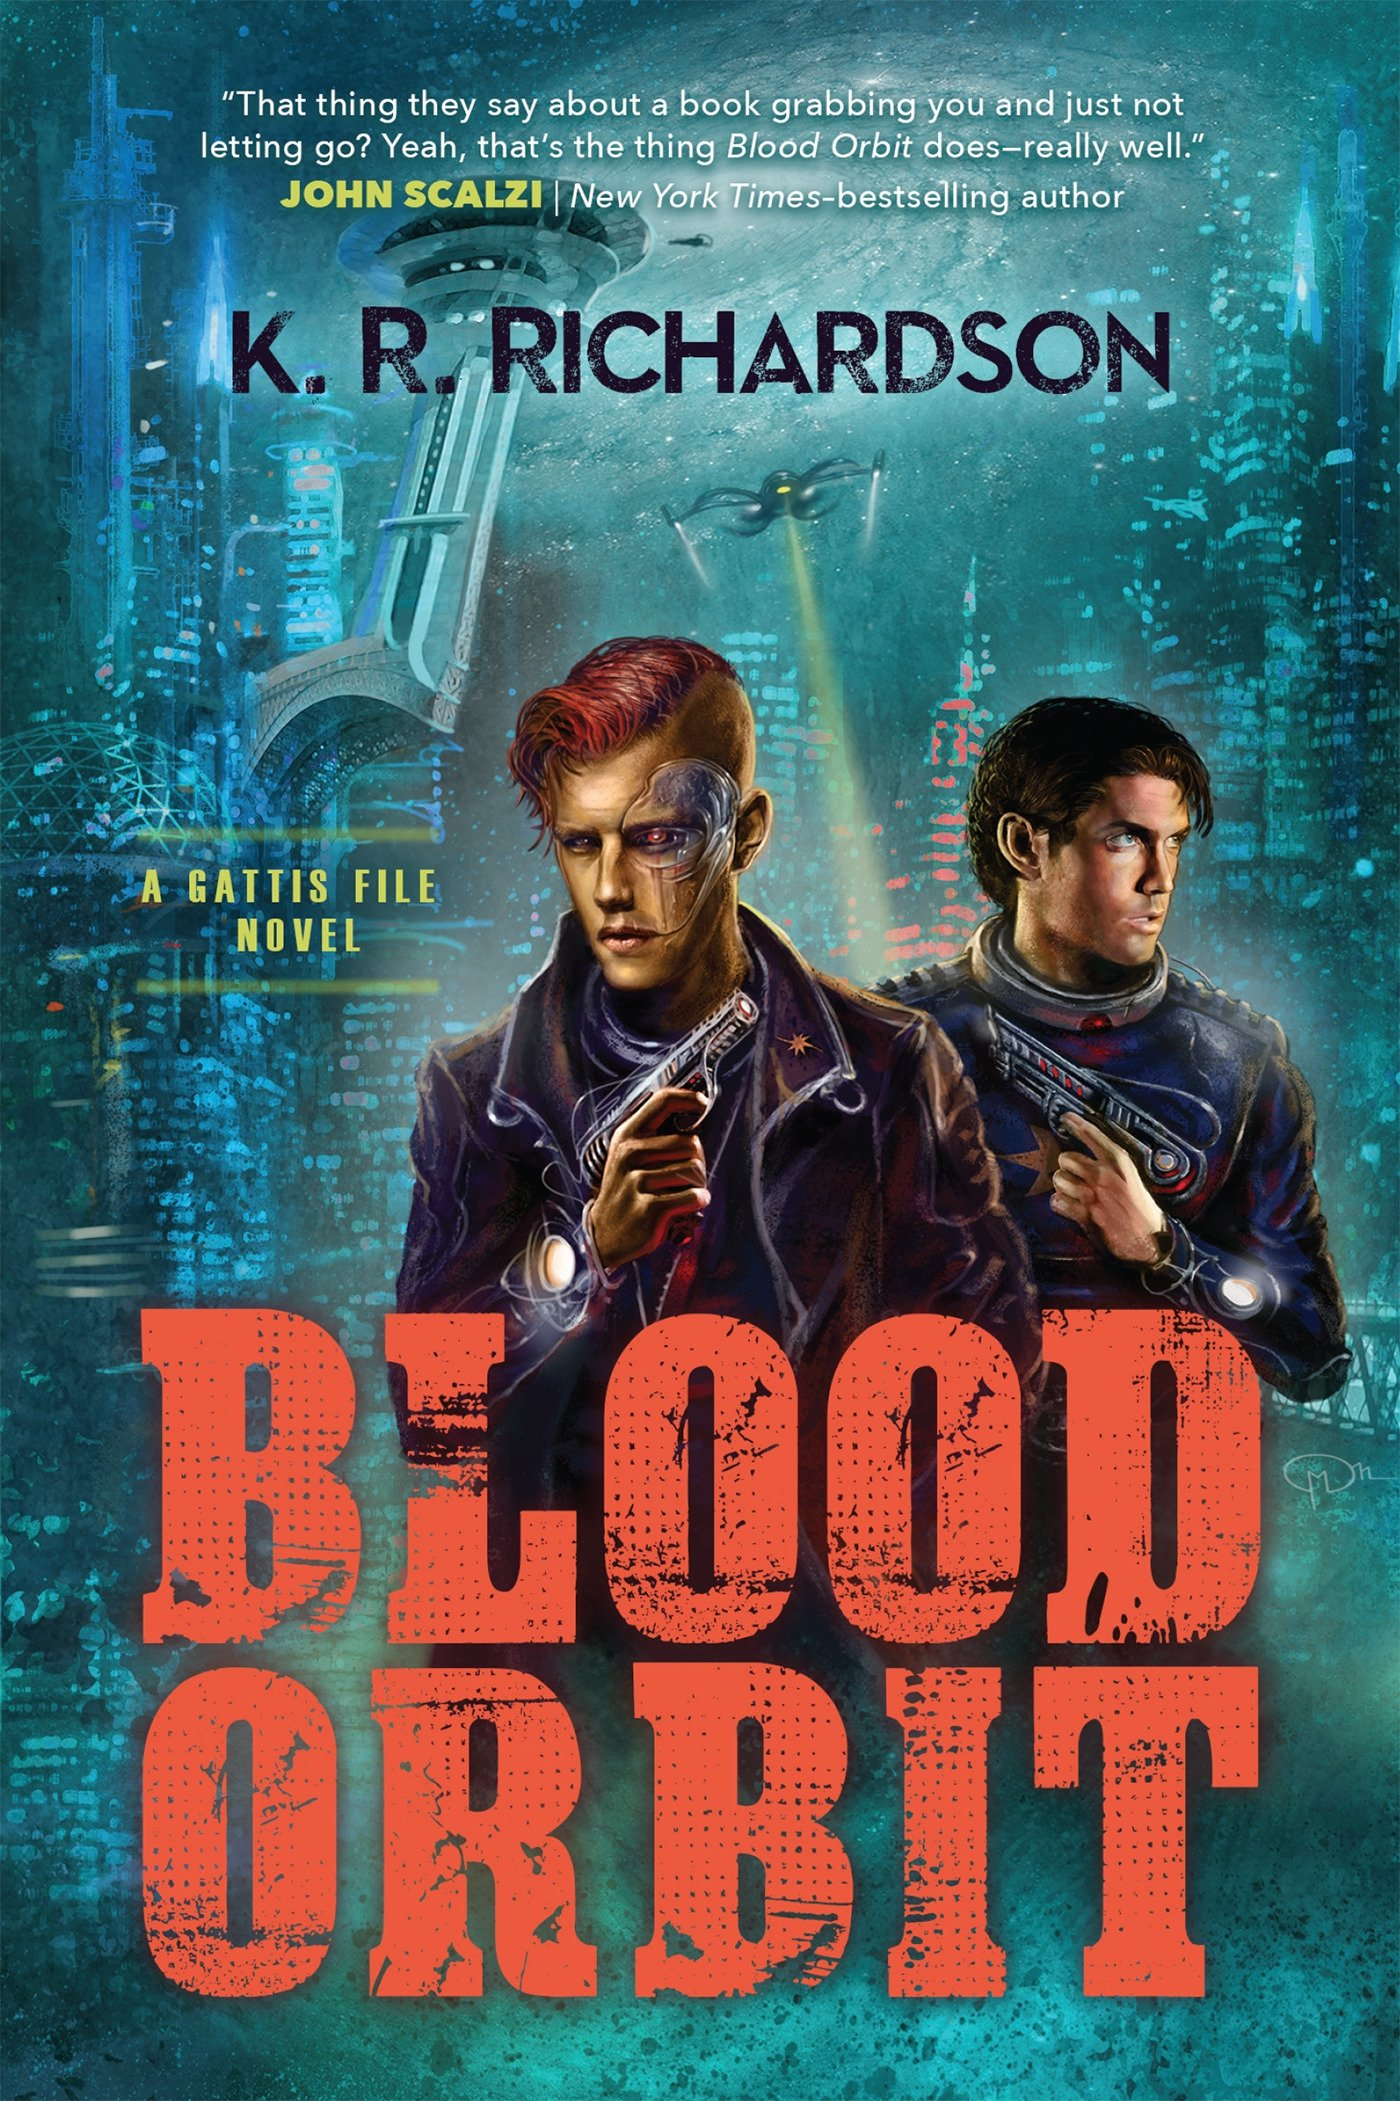 K.R. Richardson: Five Things I Learned Writing Blood Orbit